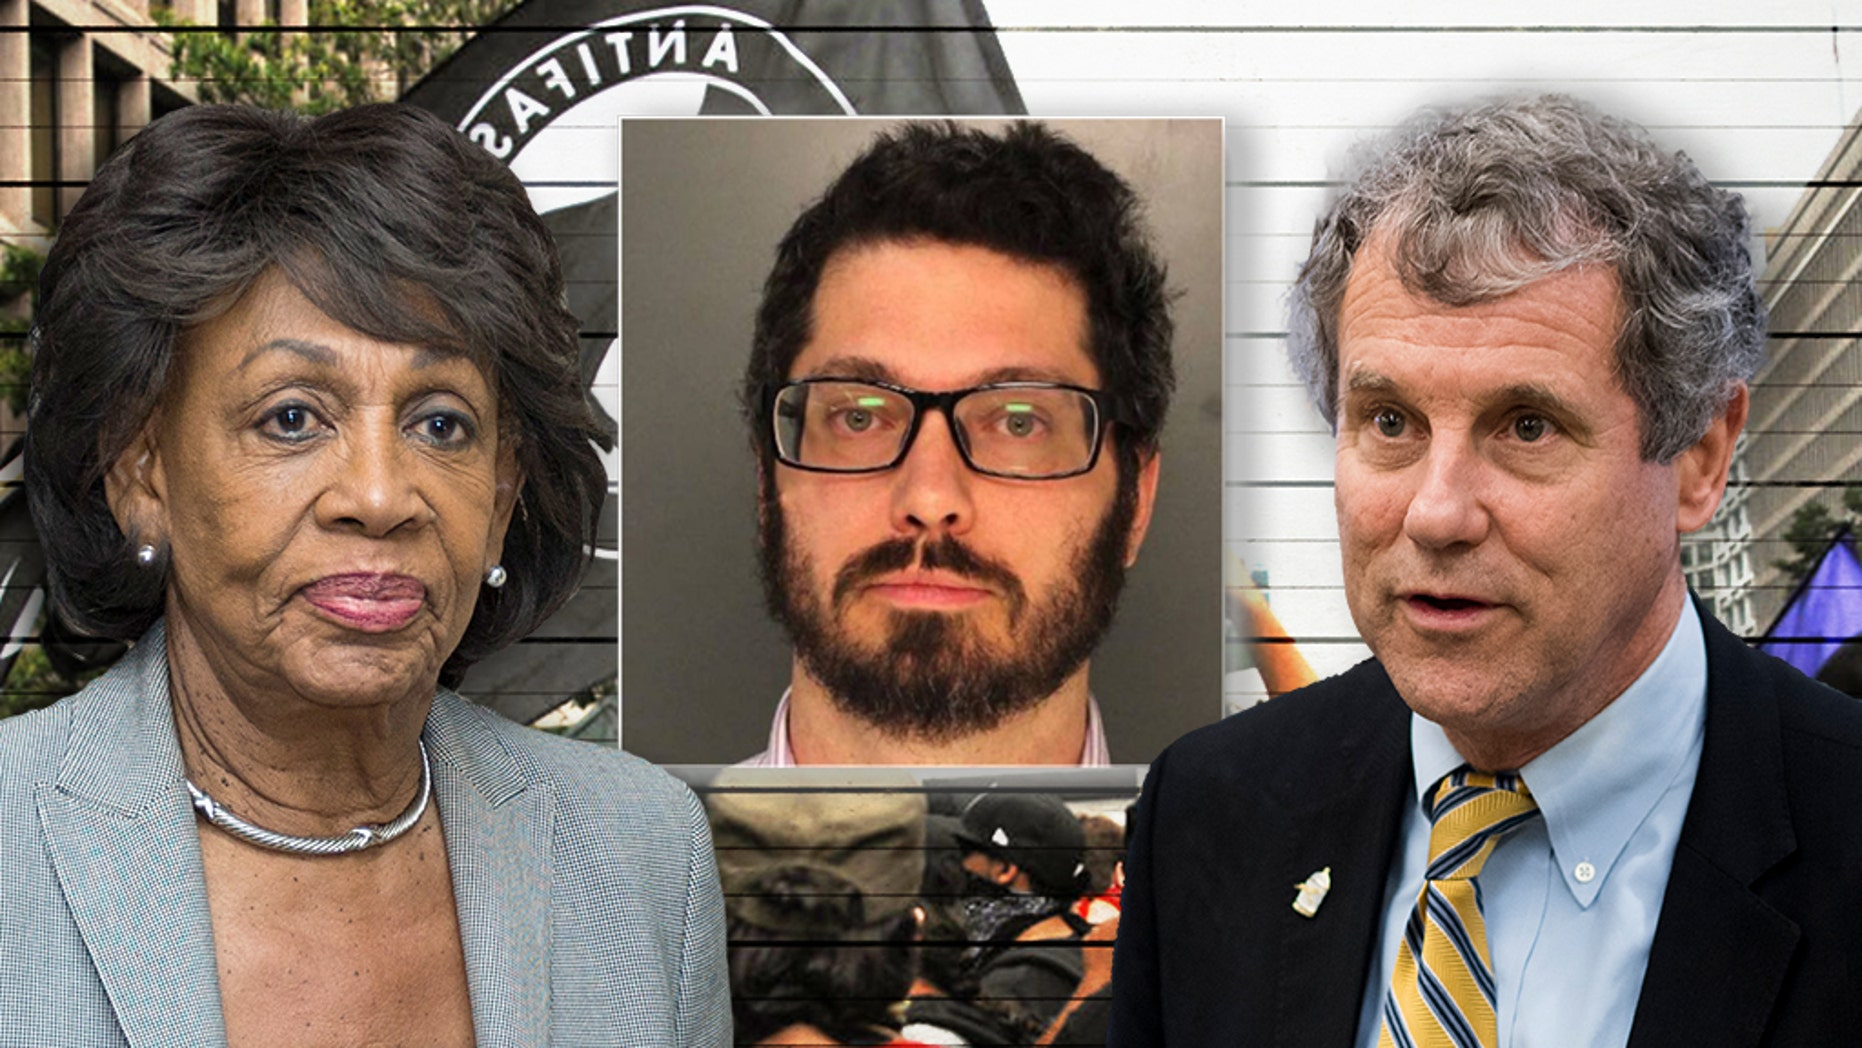 Joseph Alcoff, center, has been pictured with Rep. Maxine Waters, left, and Sen. Sherrod Brown, right.